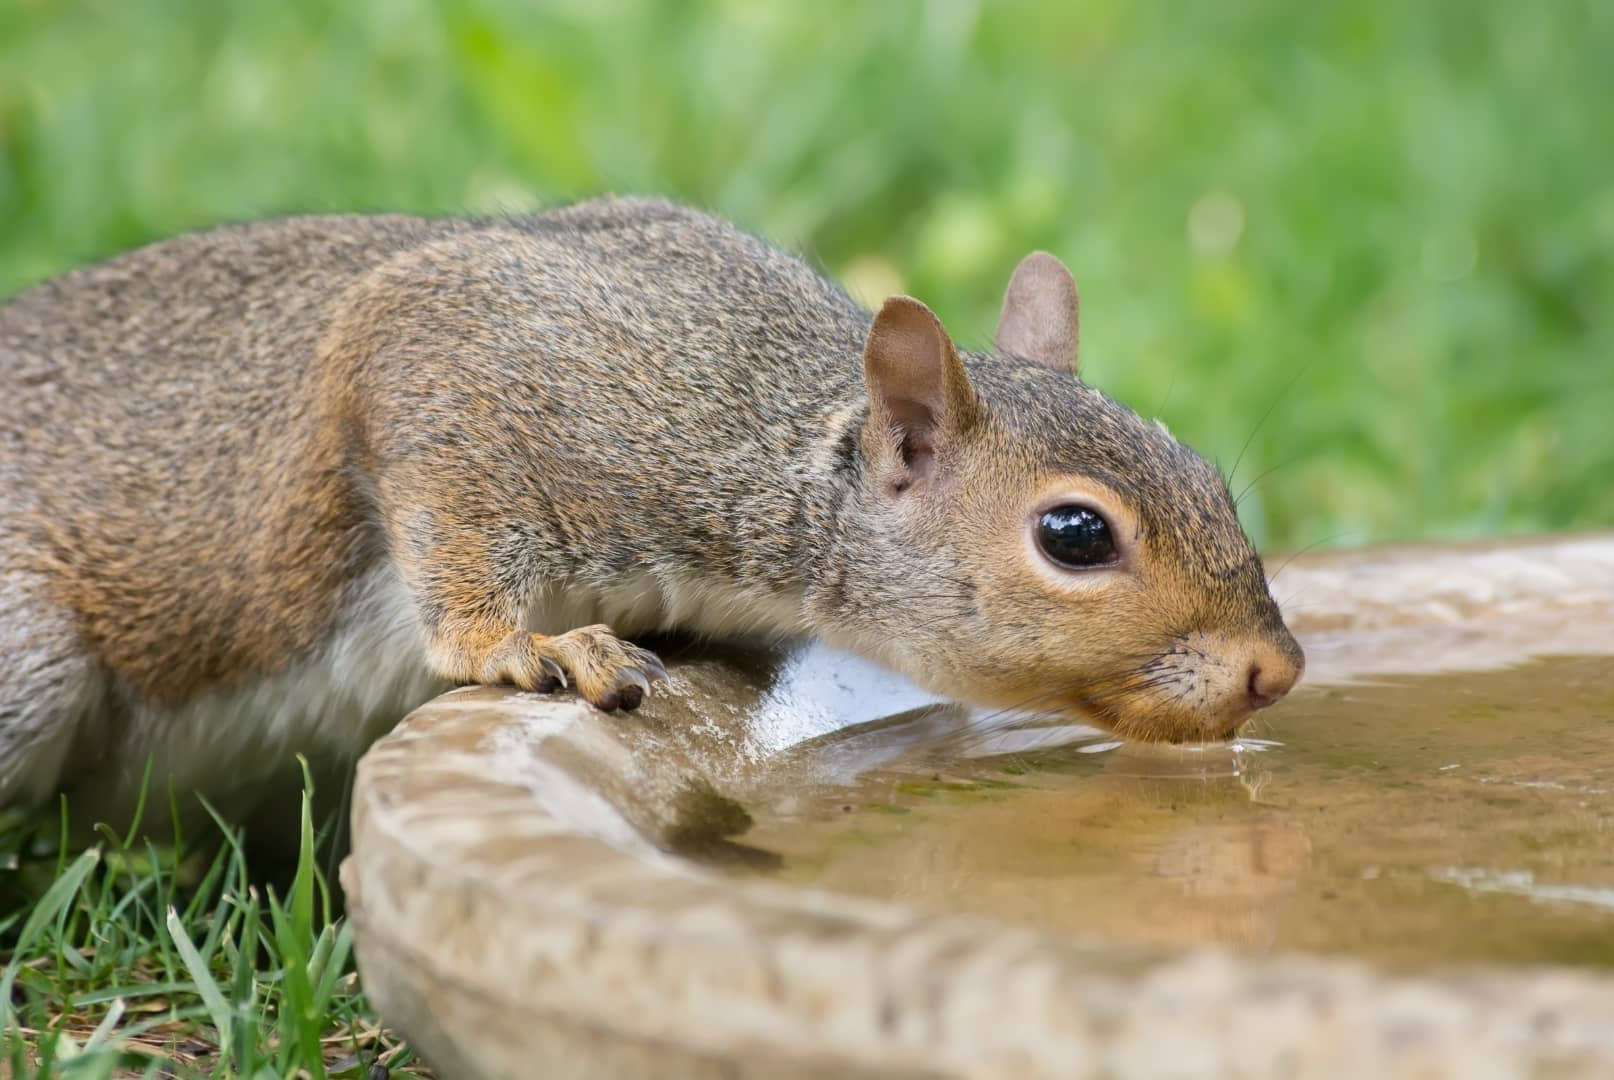 How Do Squirrels Drink Water? How Often? (Photos + Videos)